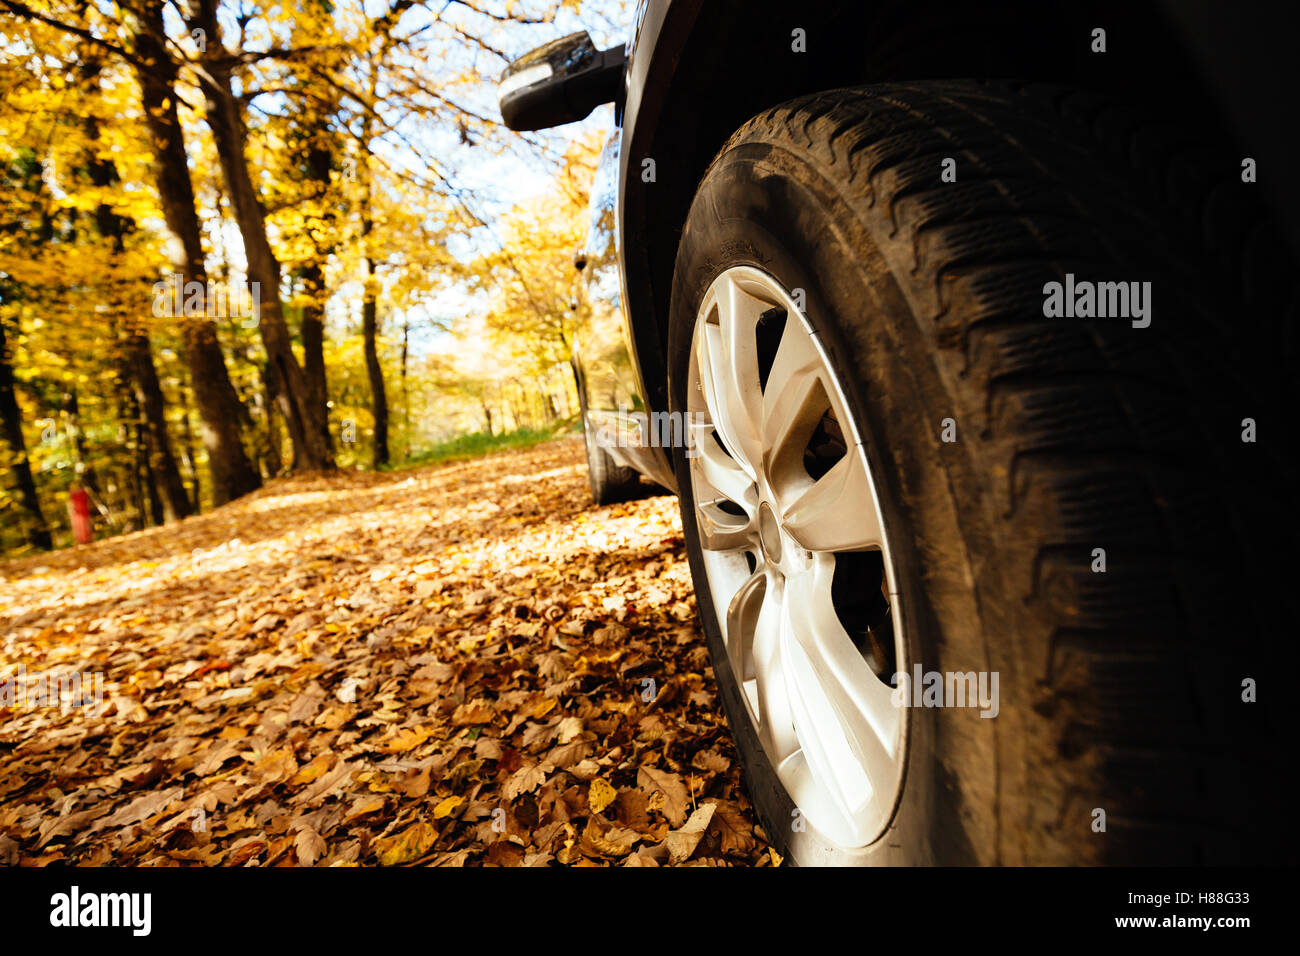 Tyres fitted on car for off road and slippery roads - Stock Image